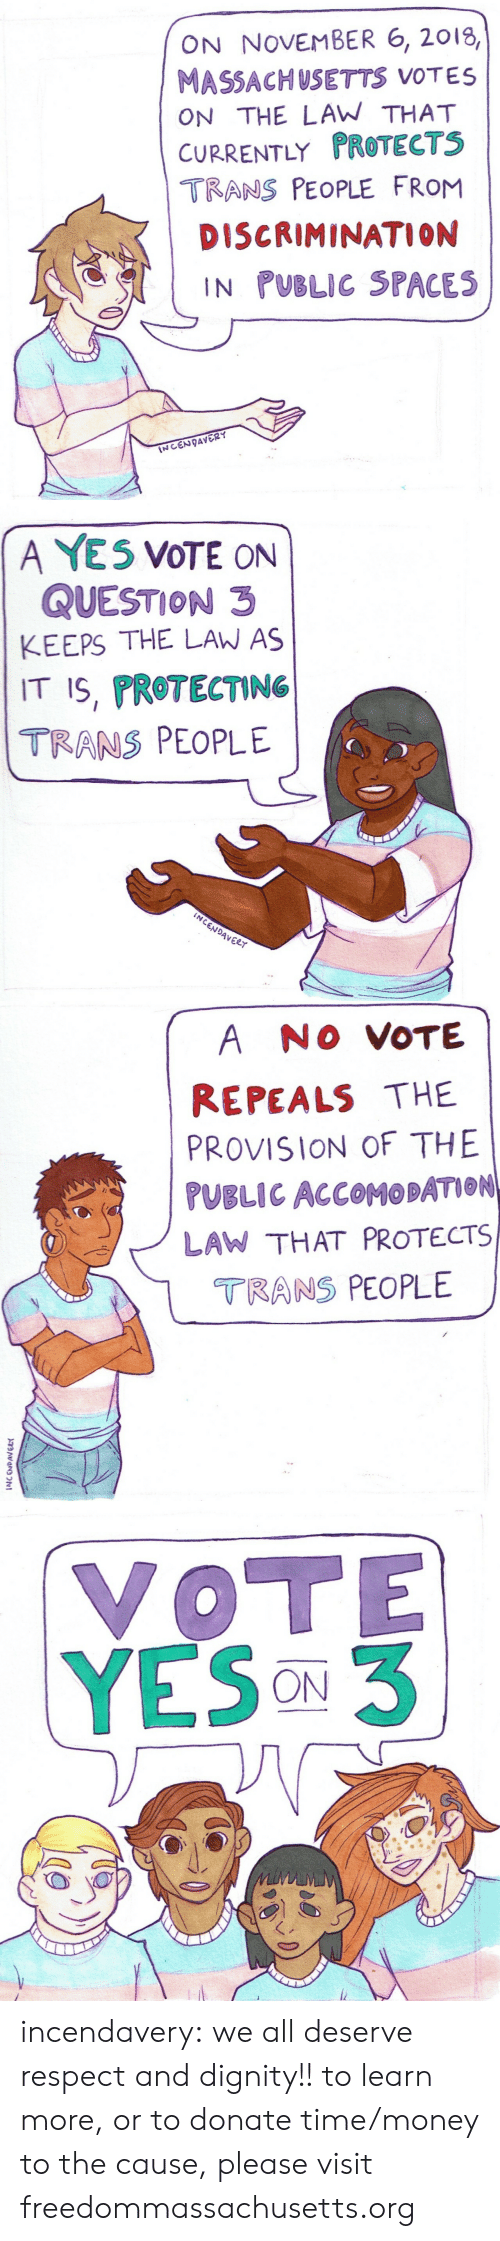 Massachusetts: ON NOVEMBER 6, 2018,  MASSACHUSETTS VOTES  ON THE LAW THAT  CURRENTLY PROTECTS  TRANS PEOPLE FRoM  DISCRIMINATION  IN PUBLIC SPACES   A YE5 VOTE ON  QUESTION 3  KEEPS THE LAW AS  IT S, PROTECTING  TRANS PEOPLE  Vo  4VER   A NO VOTE  REPEALS THE  PROVISION OF THE  PUBLIC ACCOMOBATION  LAW THAT PROTECTS  TRANS PEOPLE  2   VOTE  YESON3 incendavery: we all deserve respect and dignity!!  to learn more, or to donate time/money to the cause, please visit freedommassachusetts.org